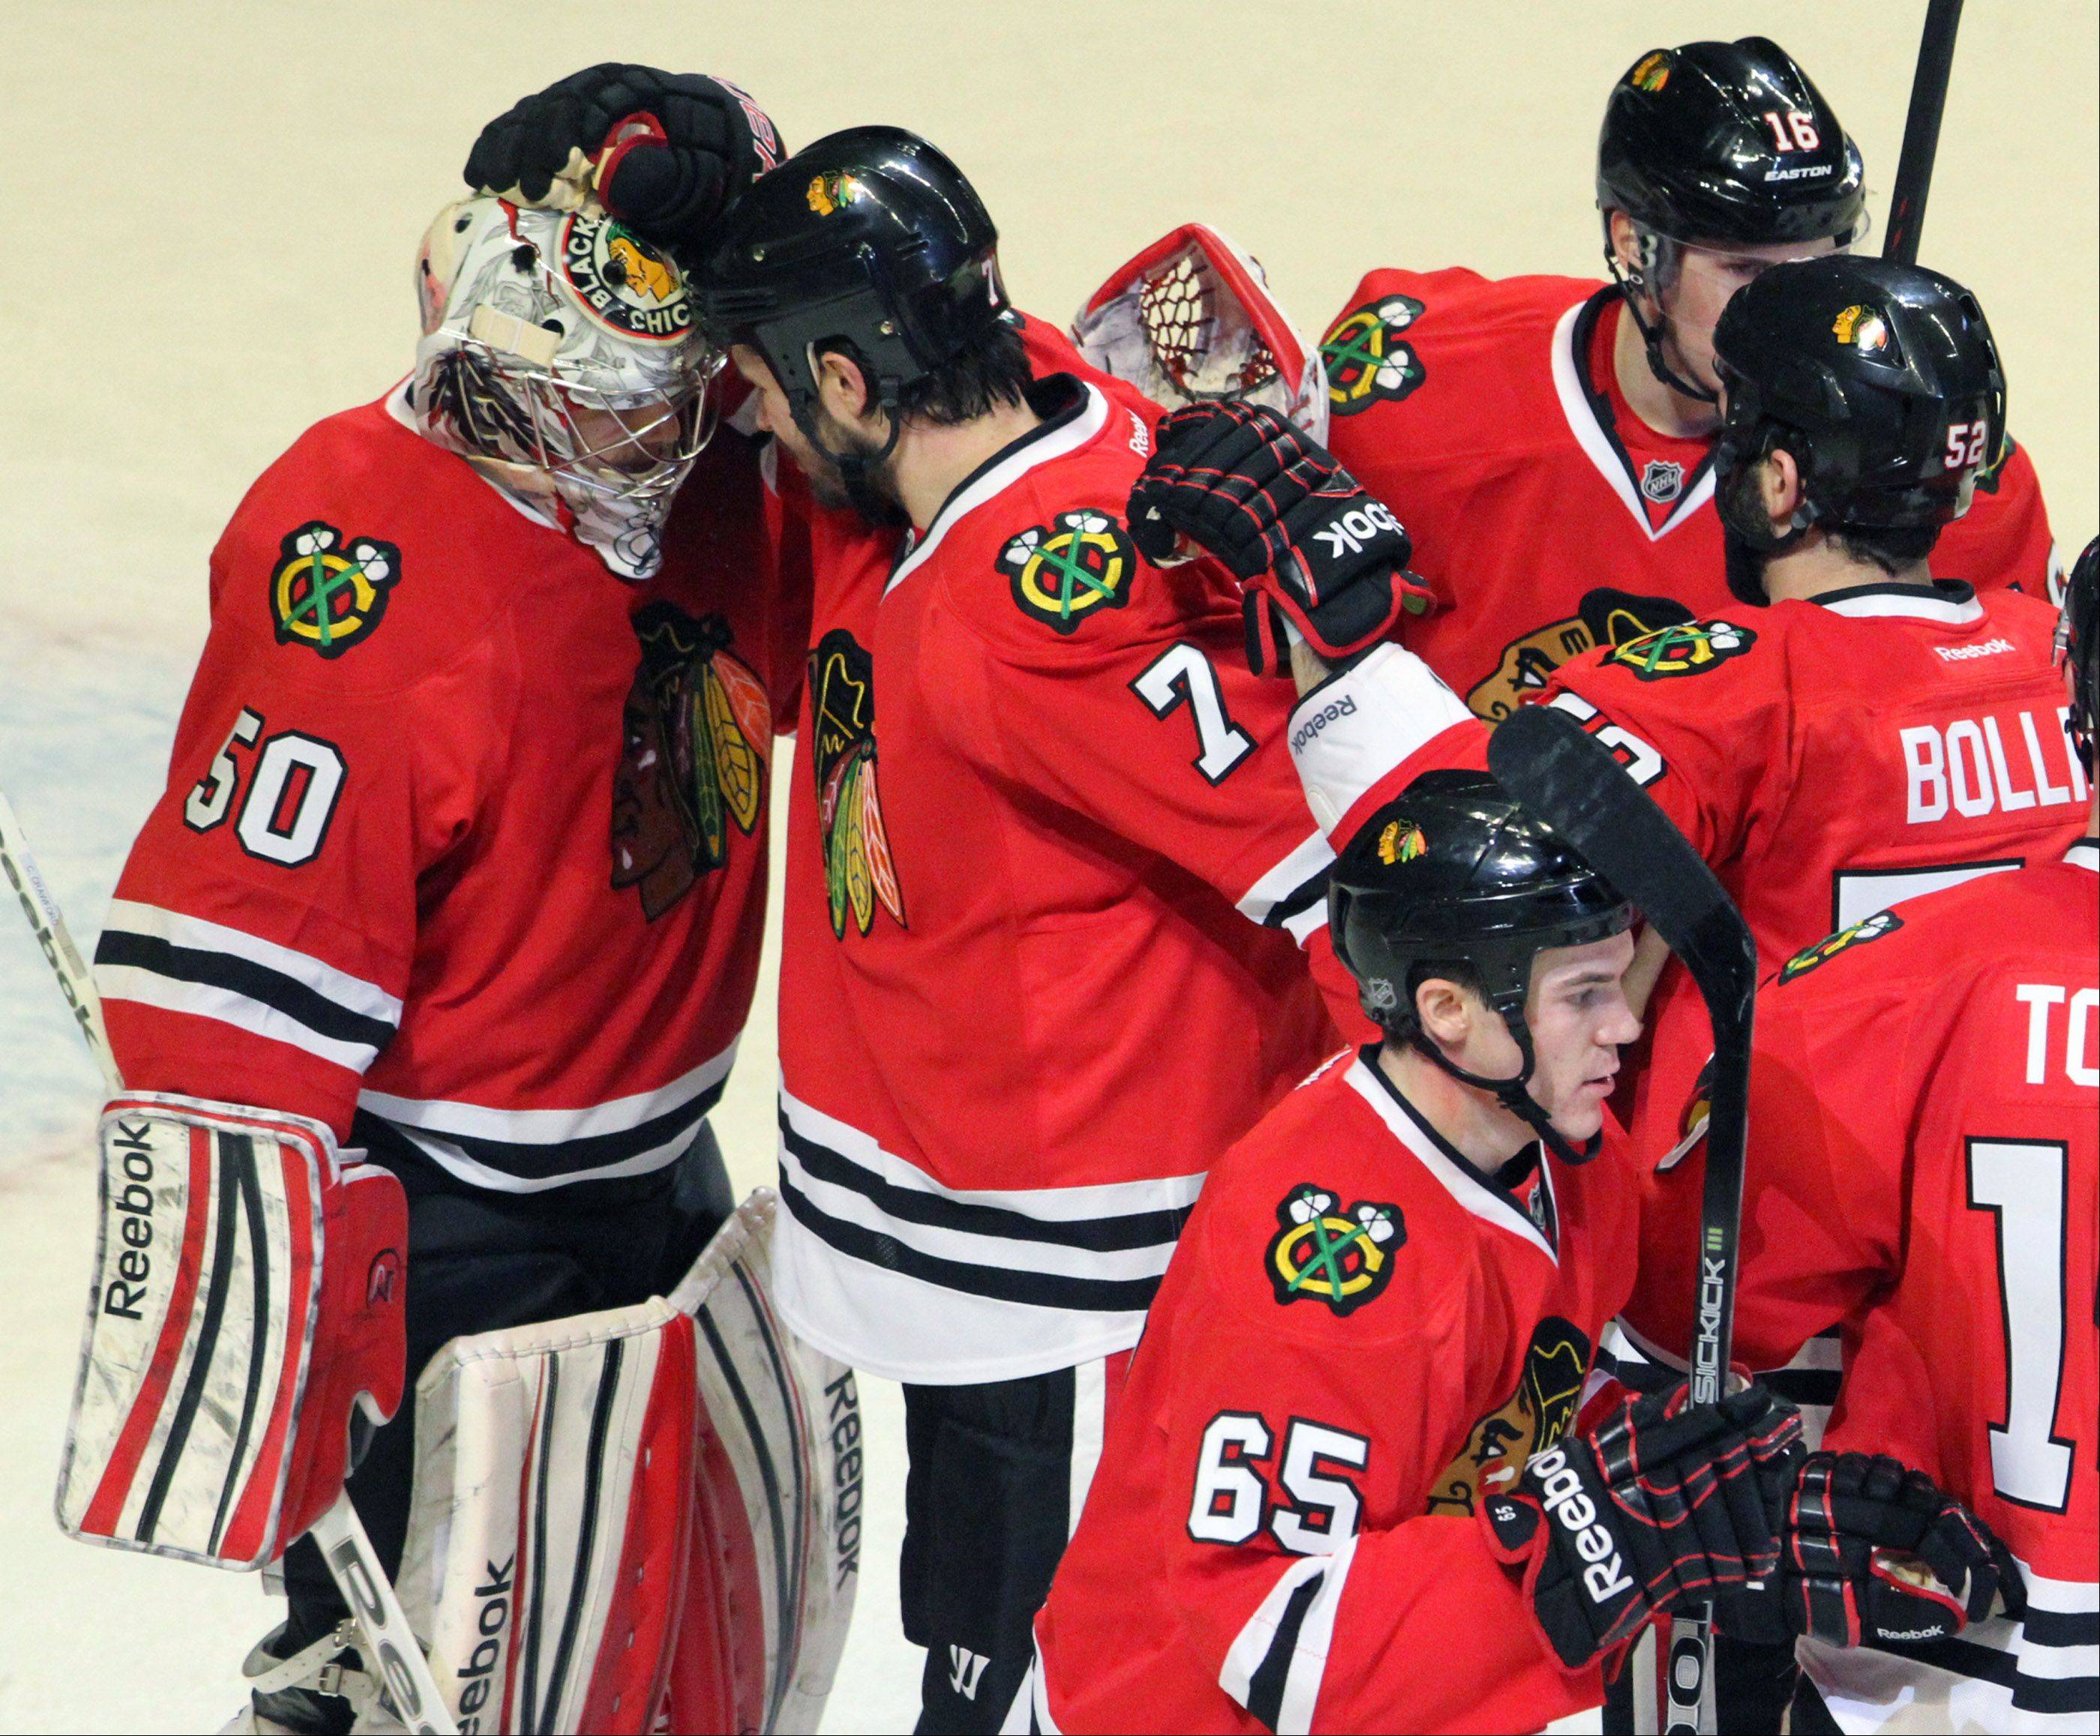 Chicago Blackhawks defenseman Brent Seabrook gives goalie Corey Crawford a hand after the win.